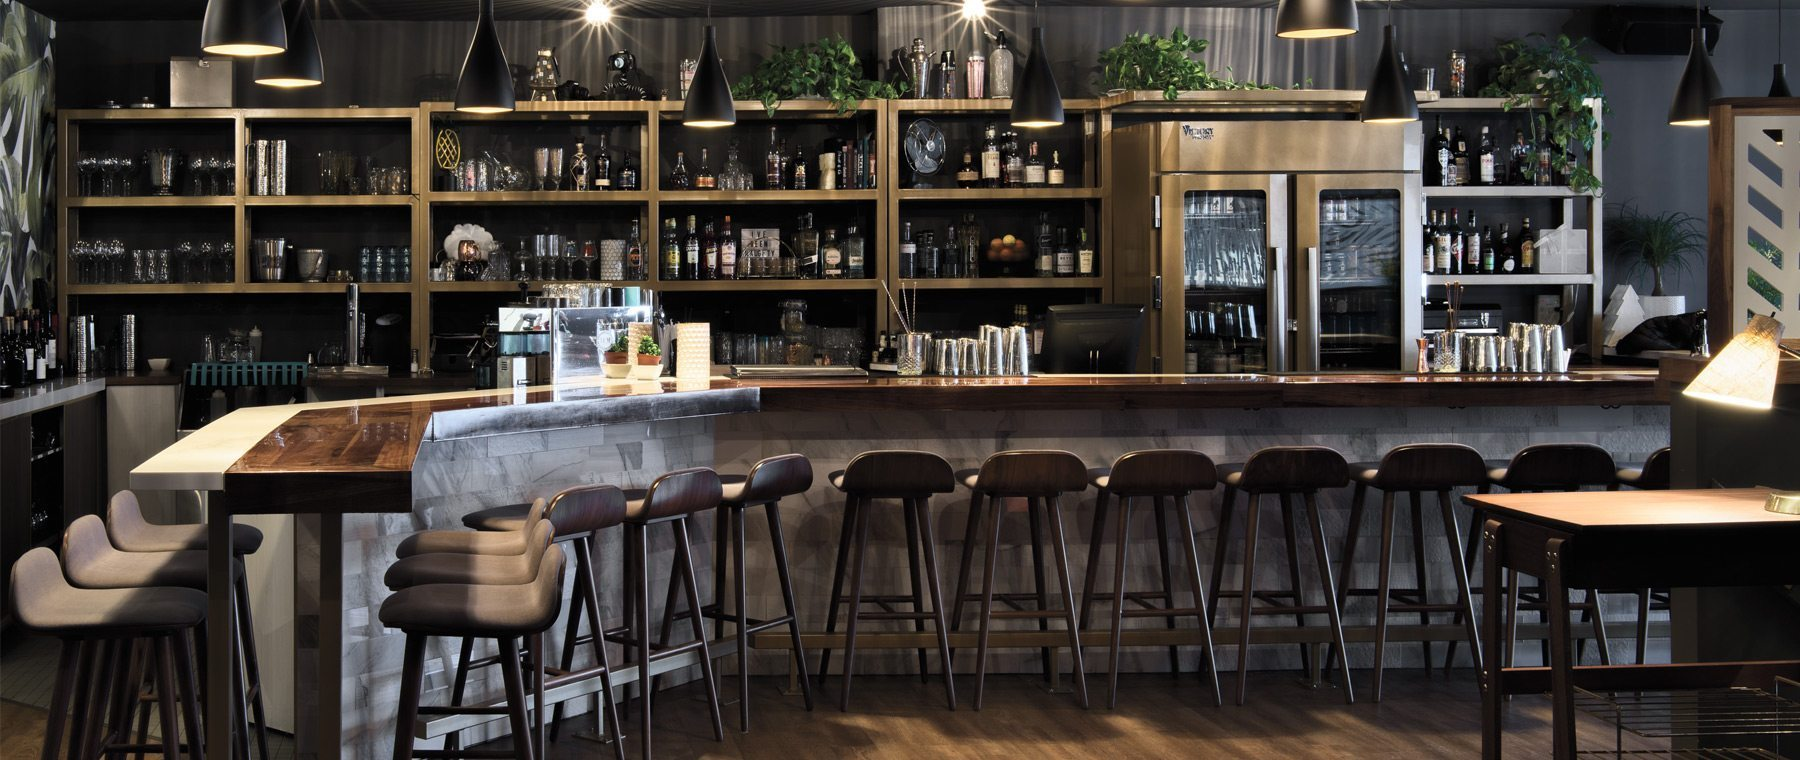 Inside the oh-so-Instagrammable retro-chic bar — Charlotte